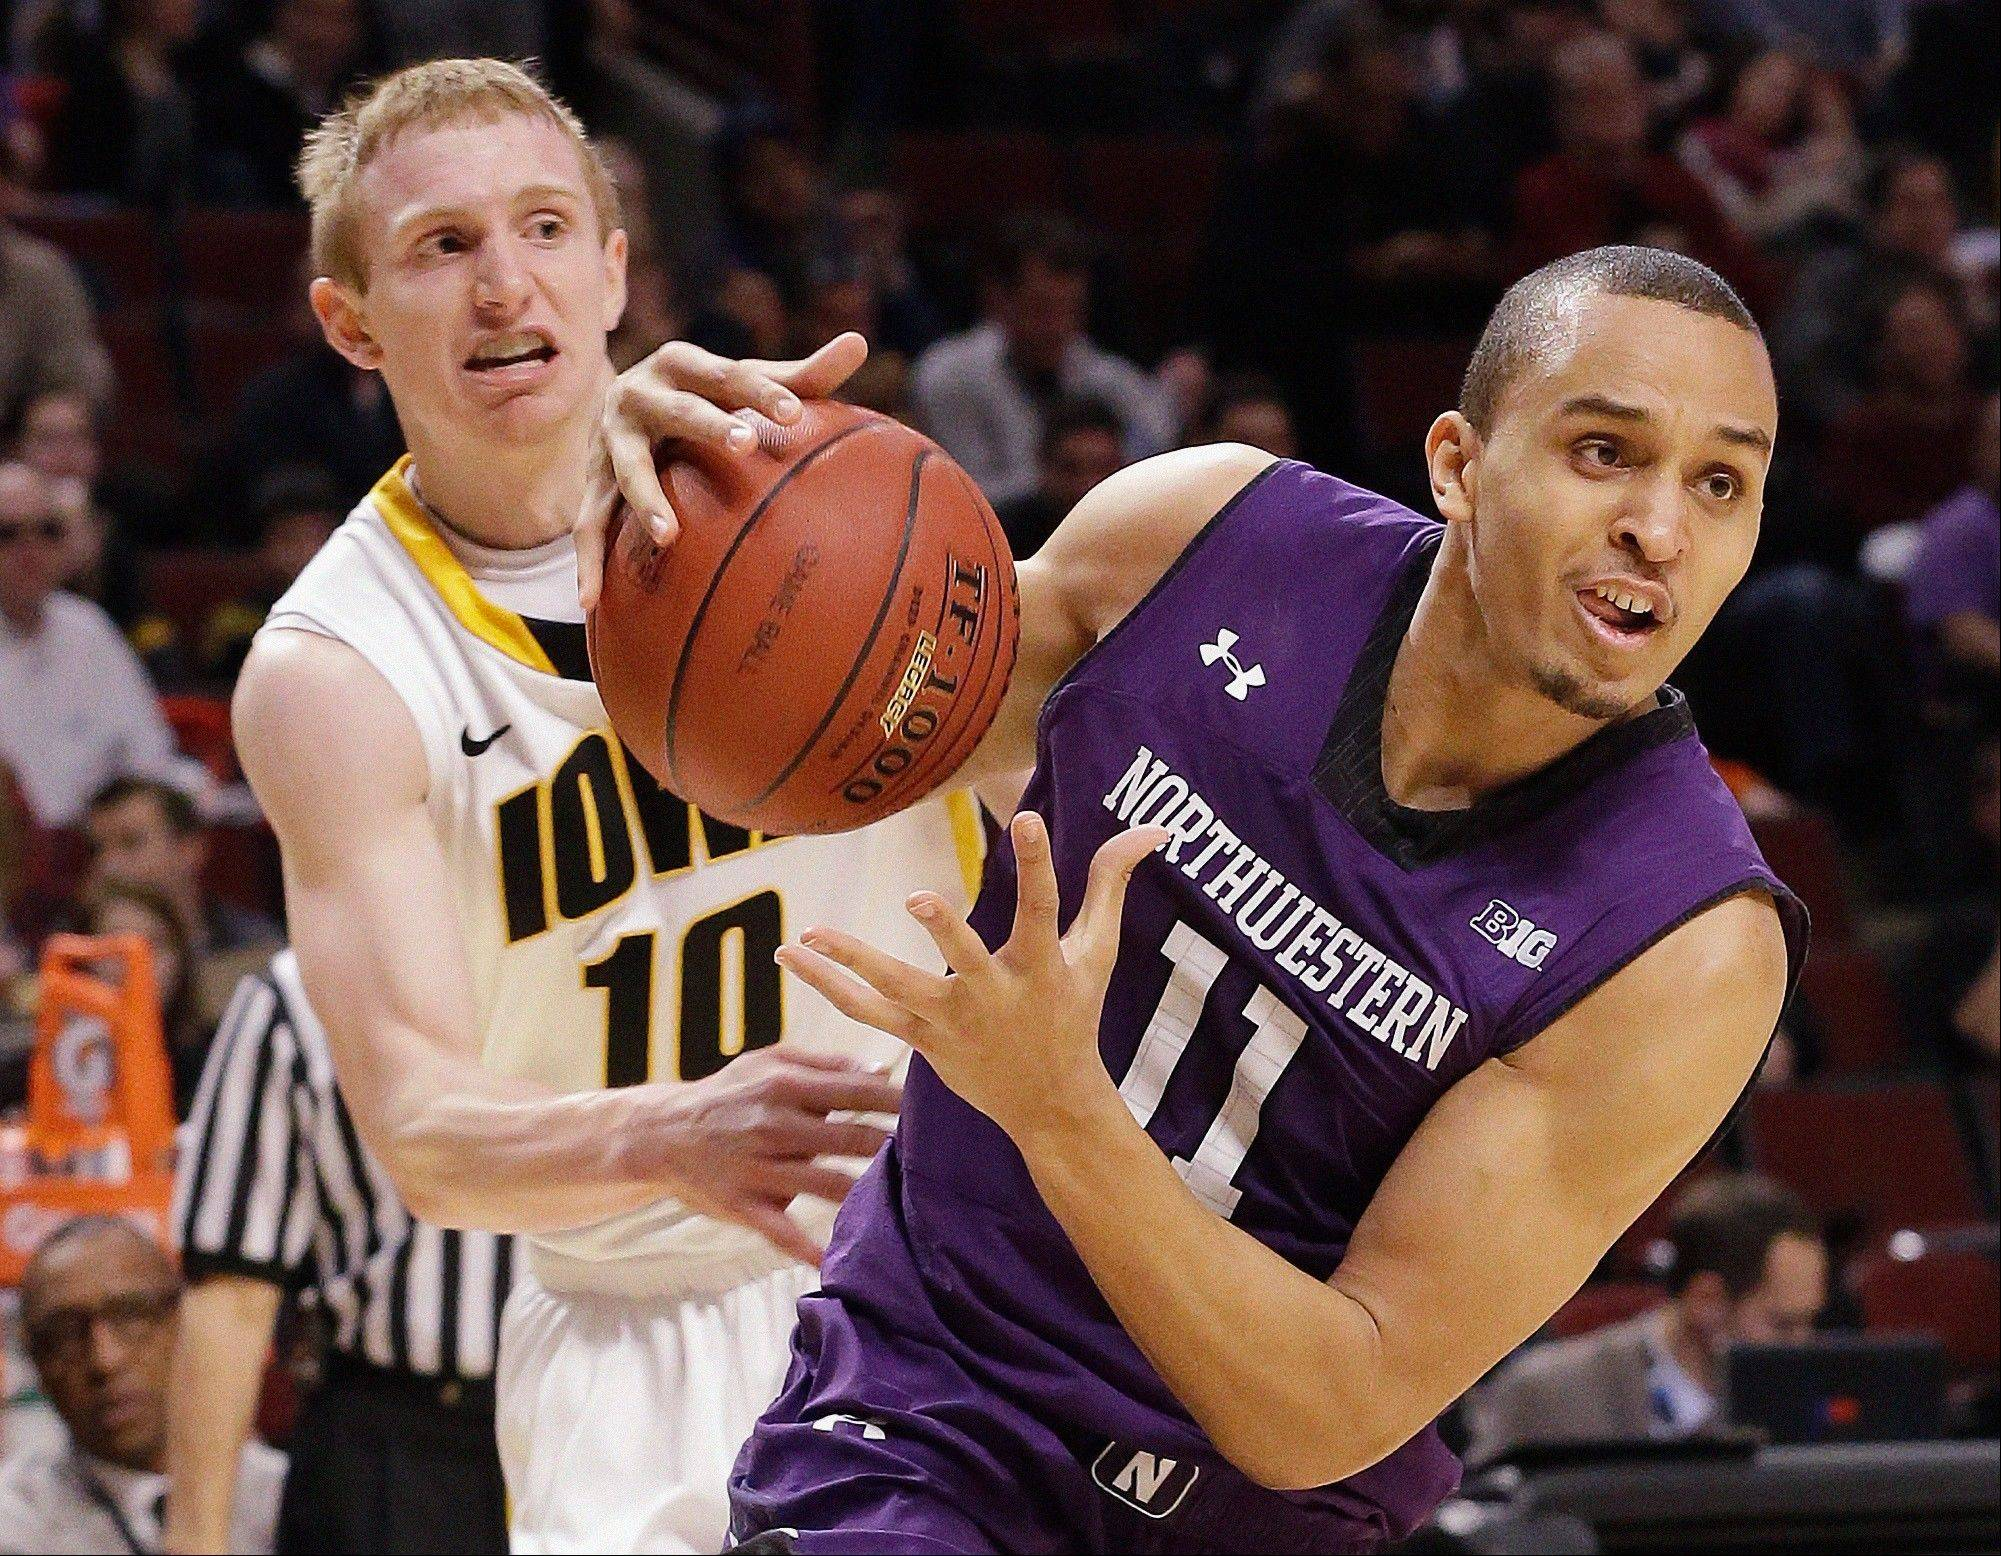 Northwestern's Reggie Hearn (11) drives past Iowa's Mike Gesell during the first half.